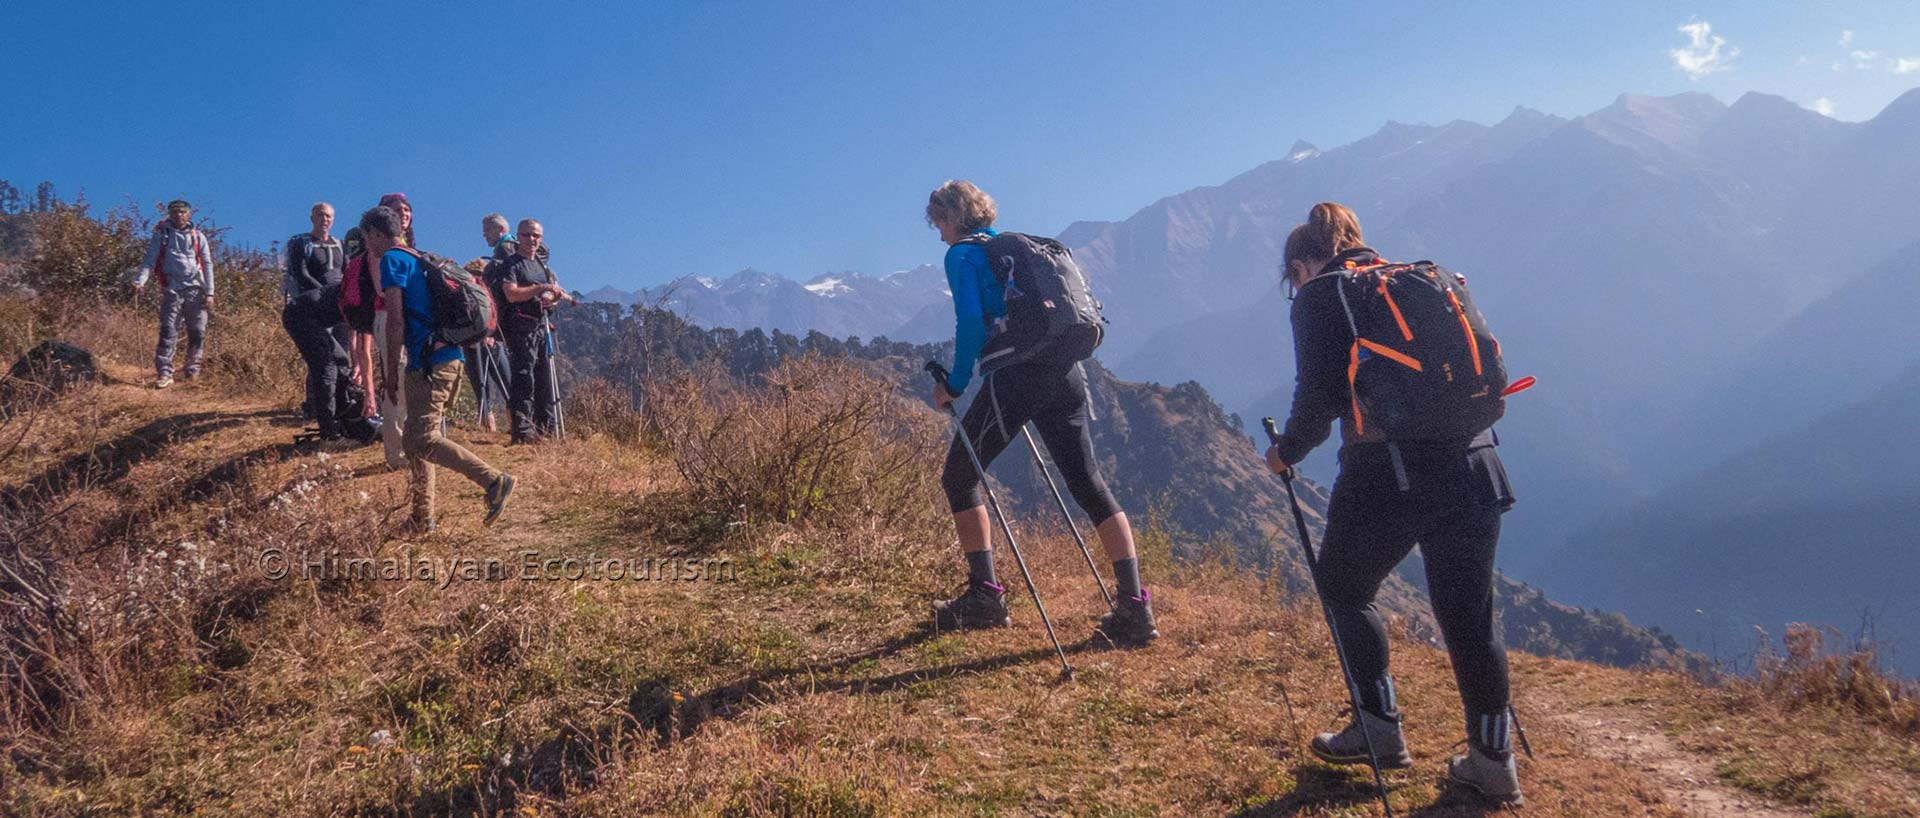 Trek in the Great Himalayan National Park GHNP - group of trekkers